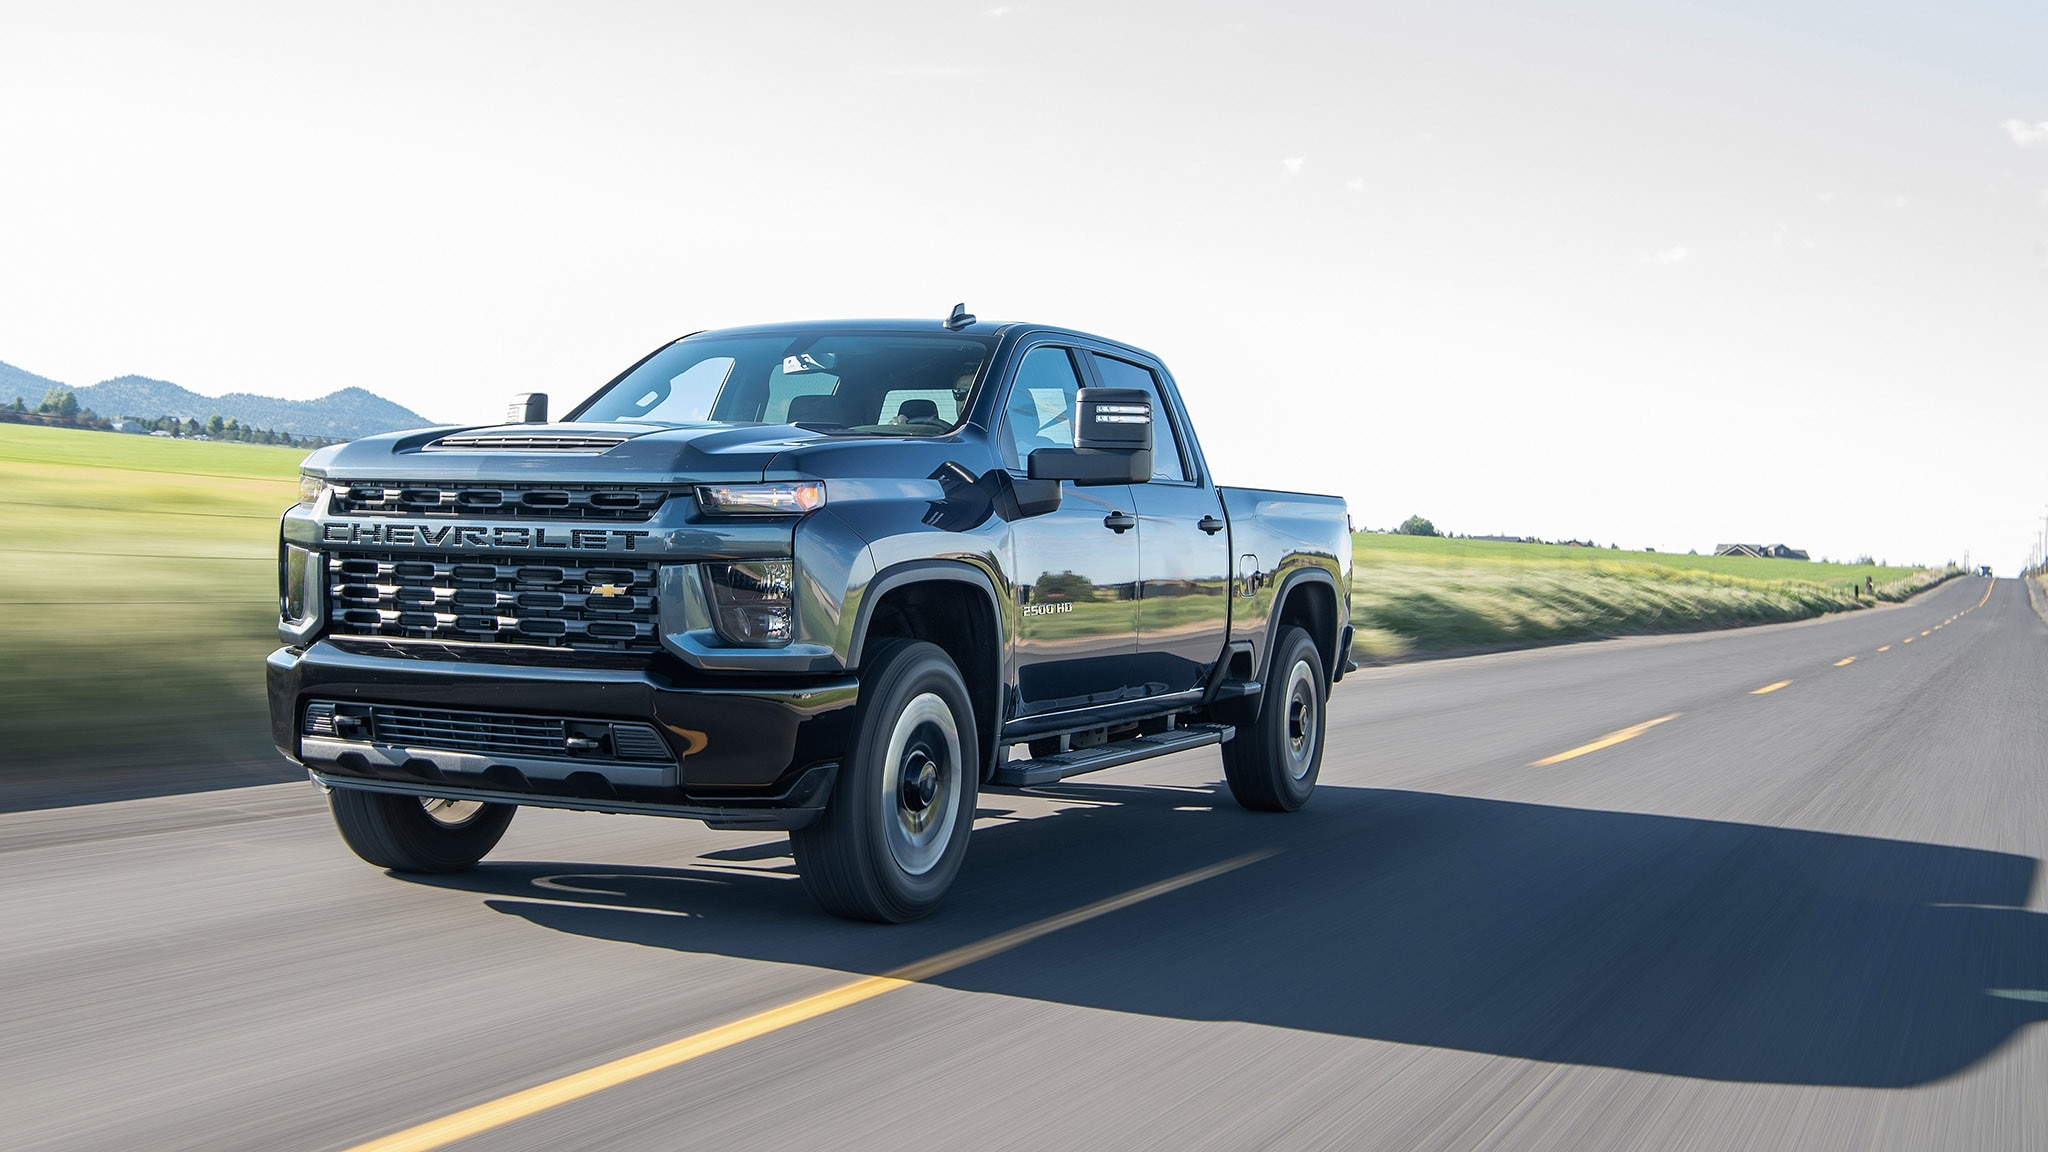 2020 chevrolet silverado 2500hd/3500hd first drive: tow